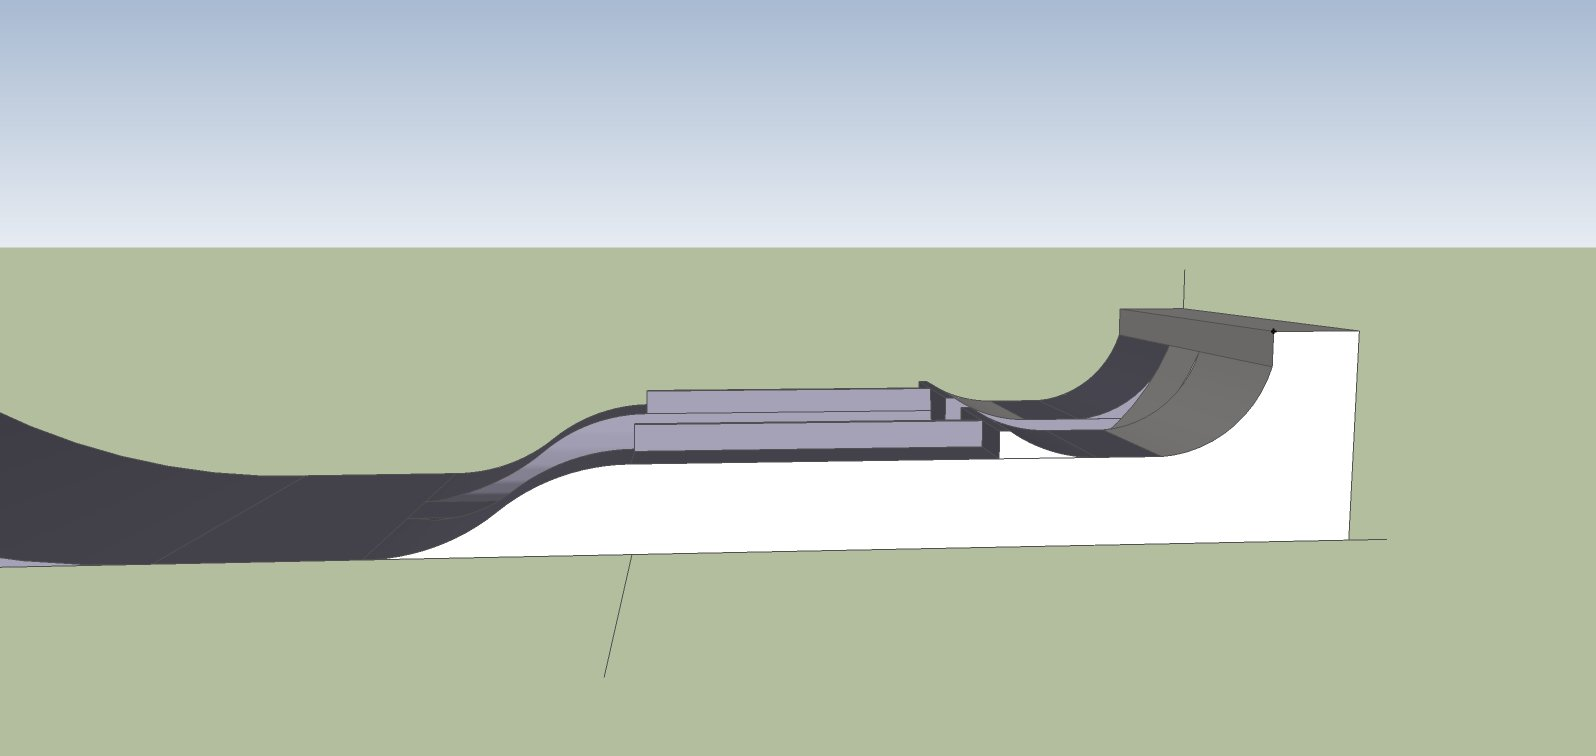 Park feature design side view